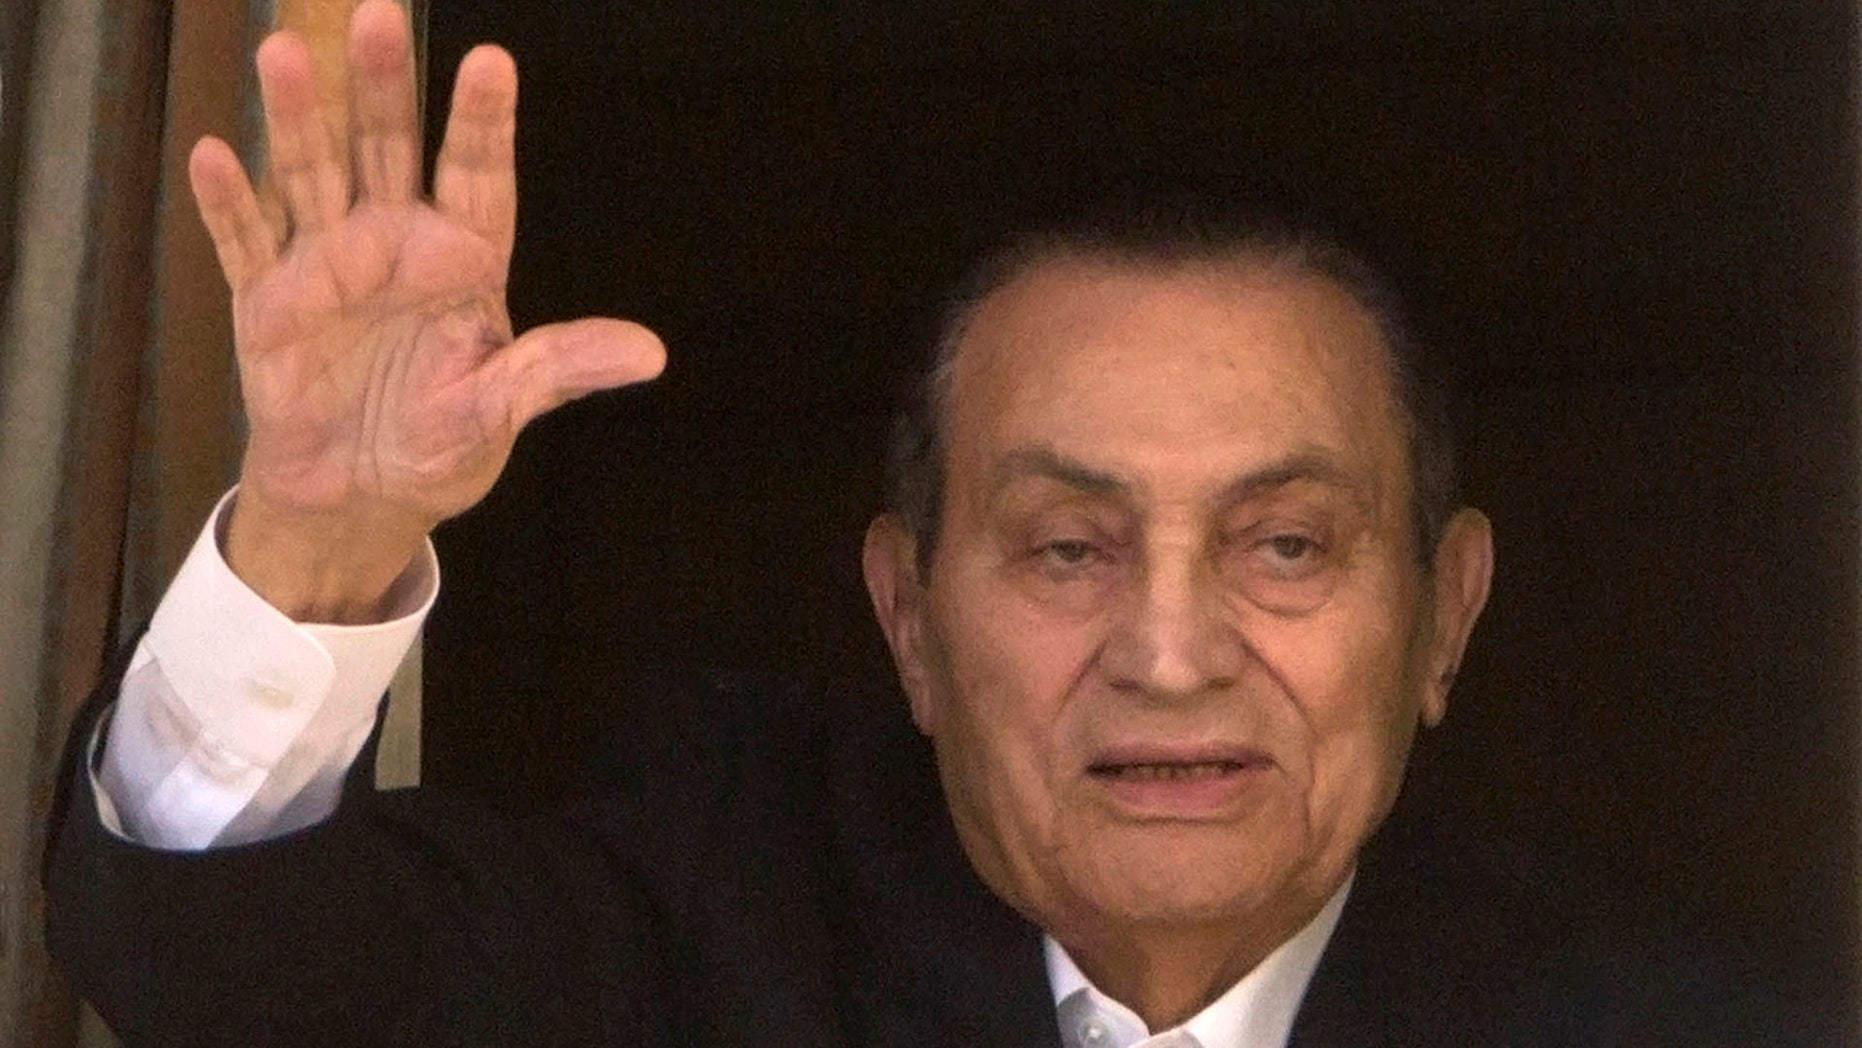 In this April 25, 2016 file photo, ousted Egyptian President Hosni Mubarak waves to his supporters from his room at the Maadi Military Hospital, where he is hospitalized, as they celebrate Sinai Liberation Day that marks the final withdrawal of all Israeli military forces from Egypt's Sinai Peninsula in 1982, in Cairo, Egypt.